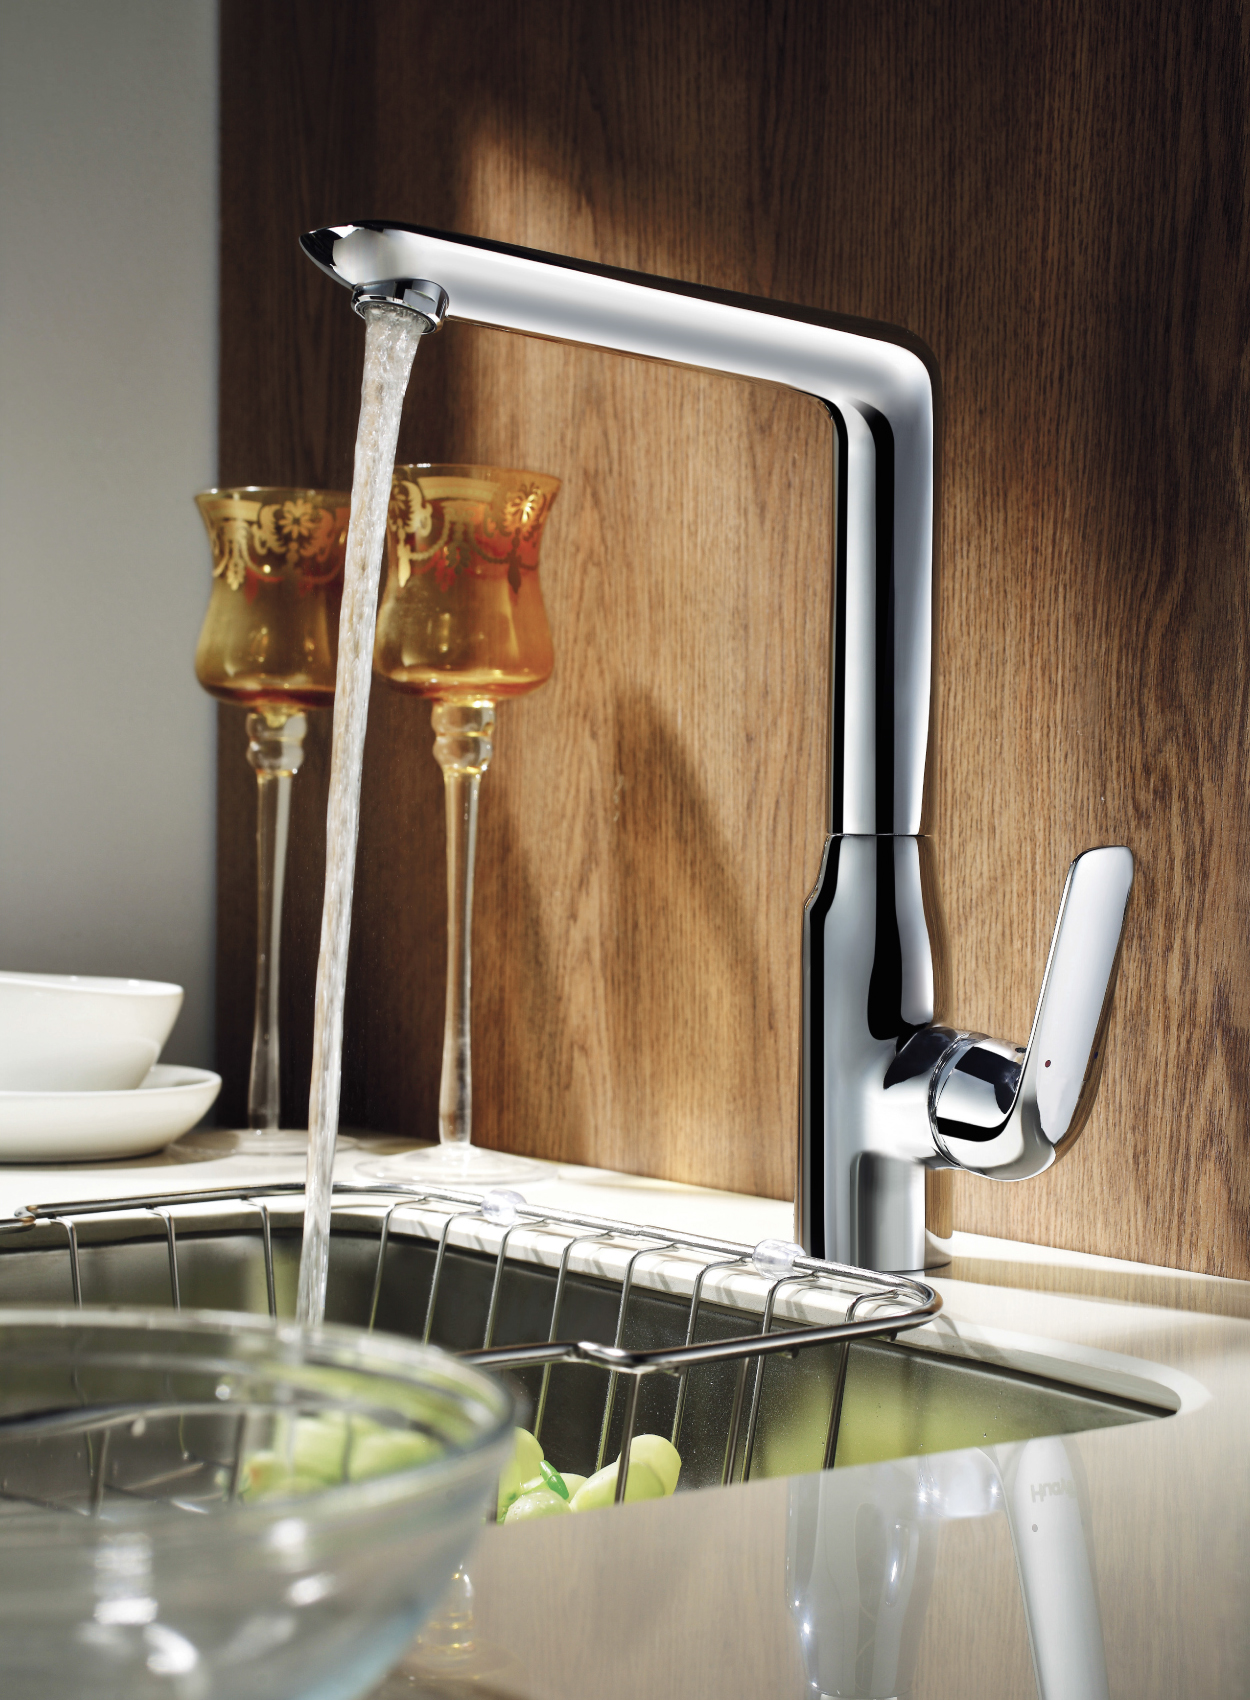 Astini Vendome kitchen taps, available in chrome and brushed steel finish from £279.99 - Available autumn 2014